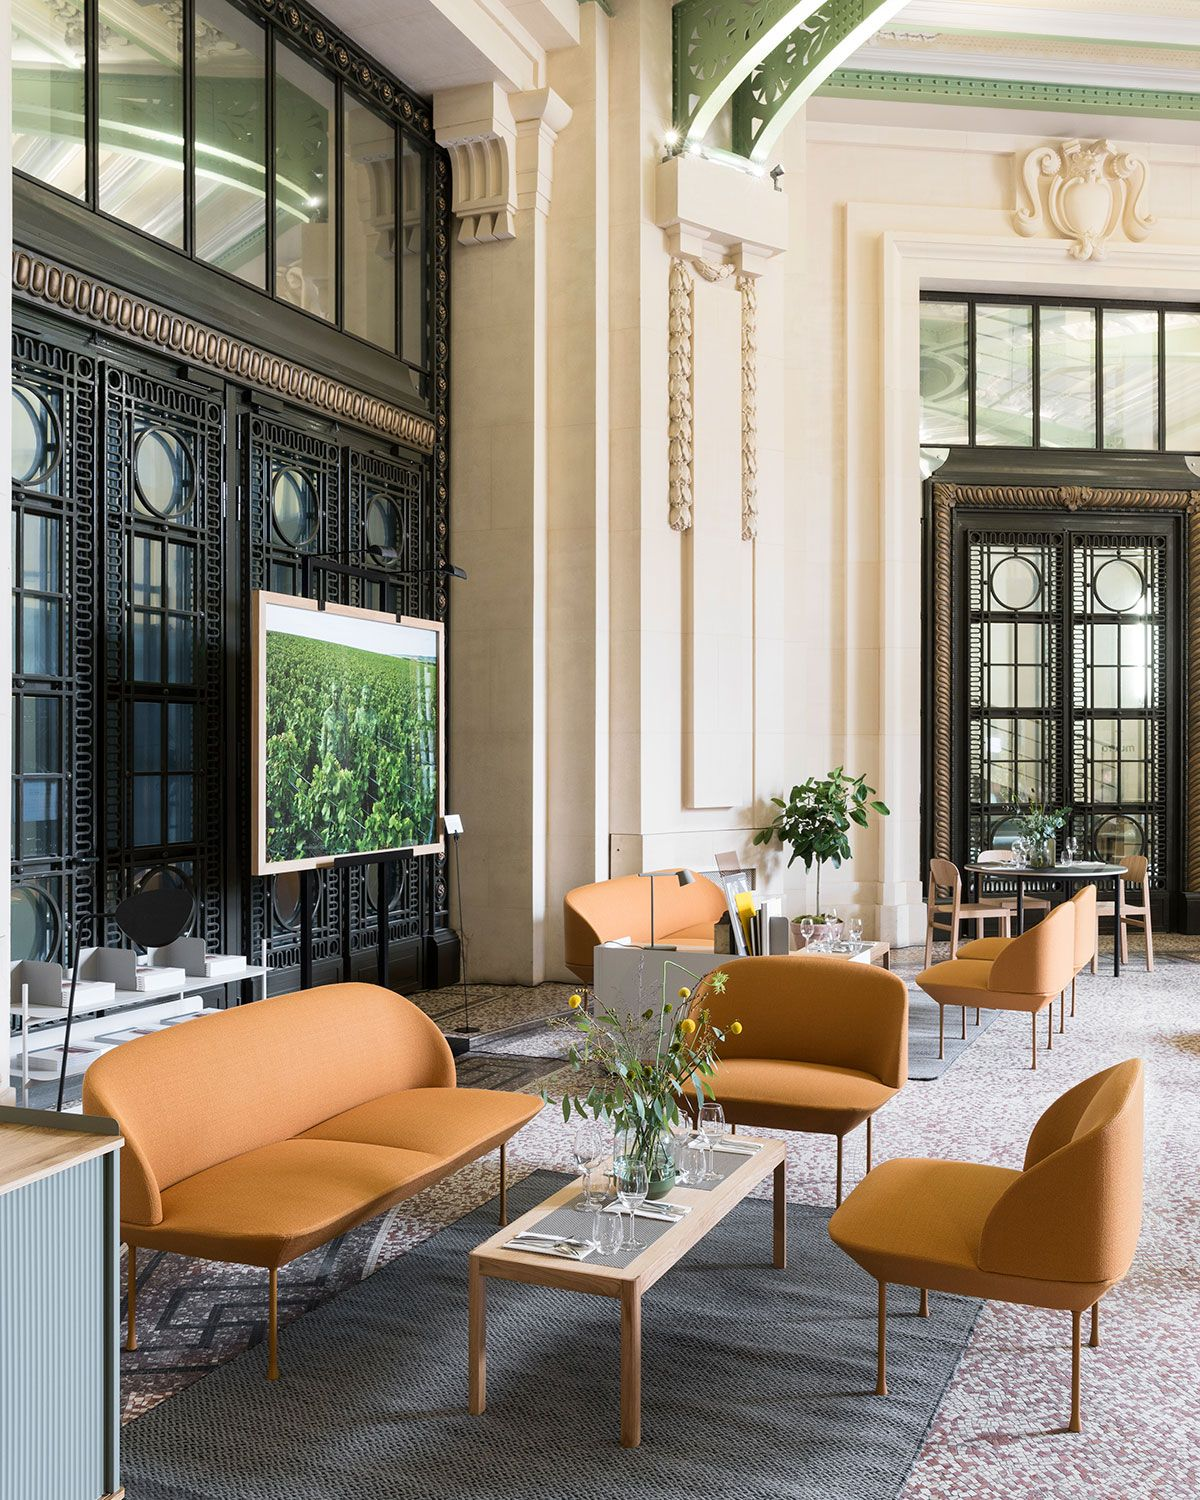 Introducing The New Modern Home: Introducing The Muuto Lounge At The FIAC International